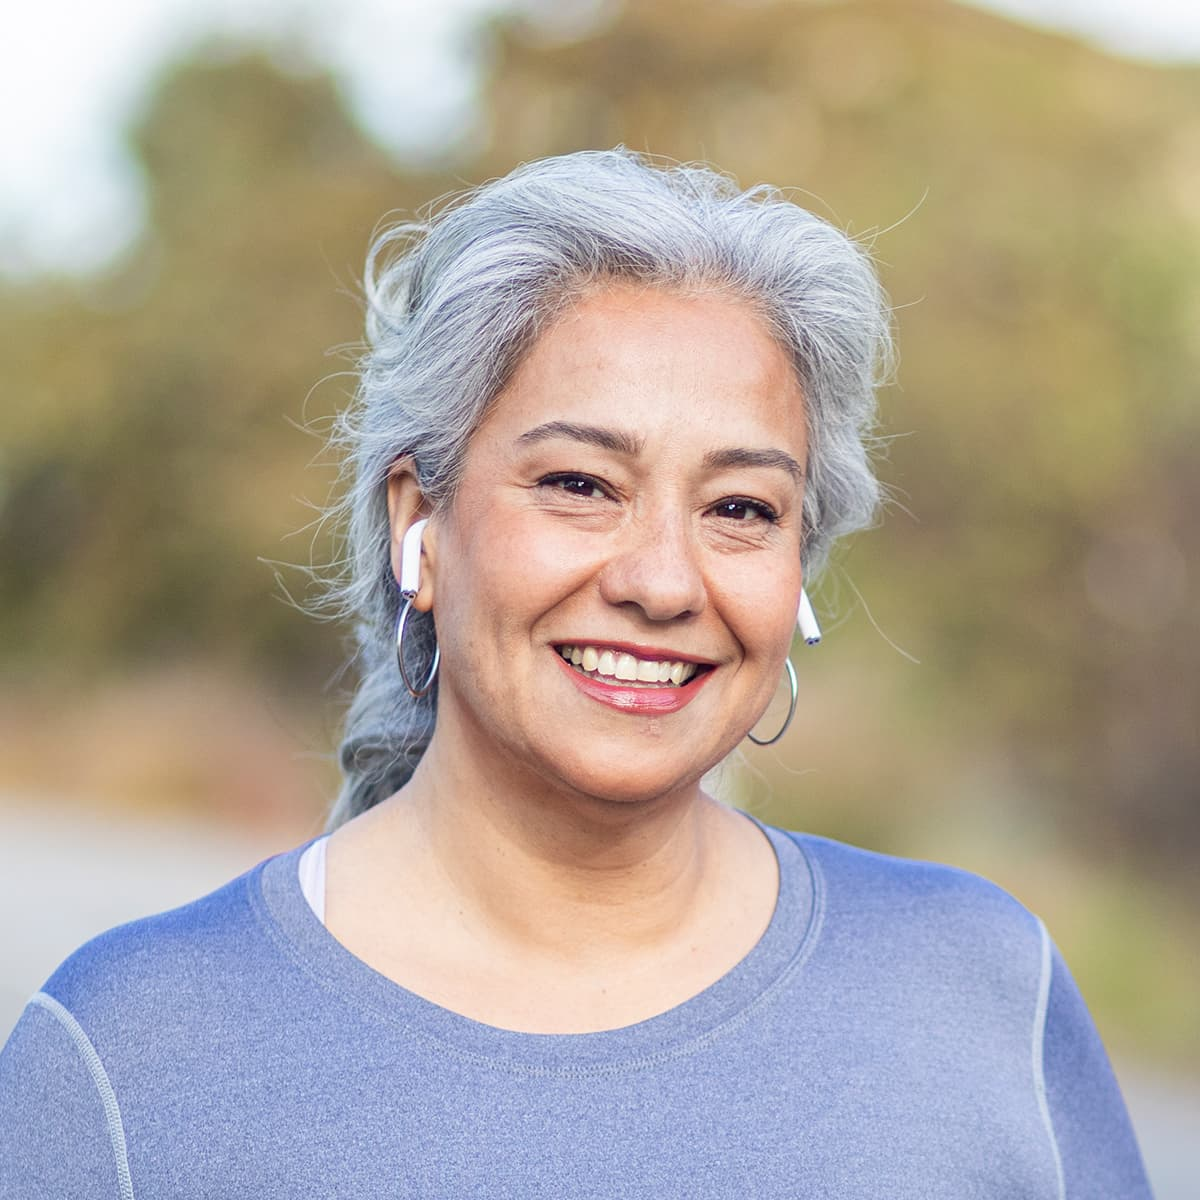 Woman with silver hair smiling while wearing airpods